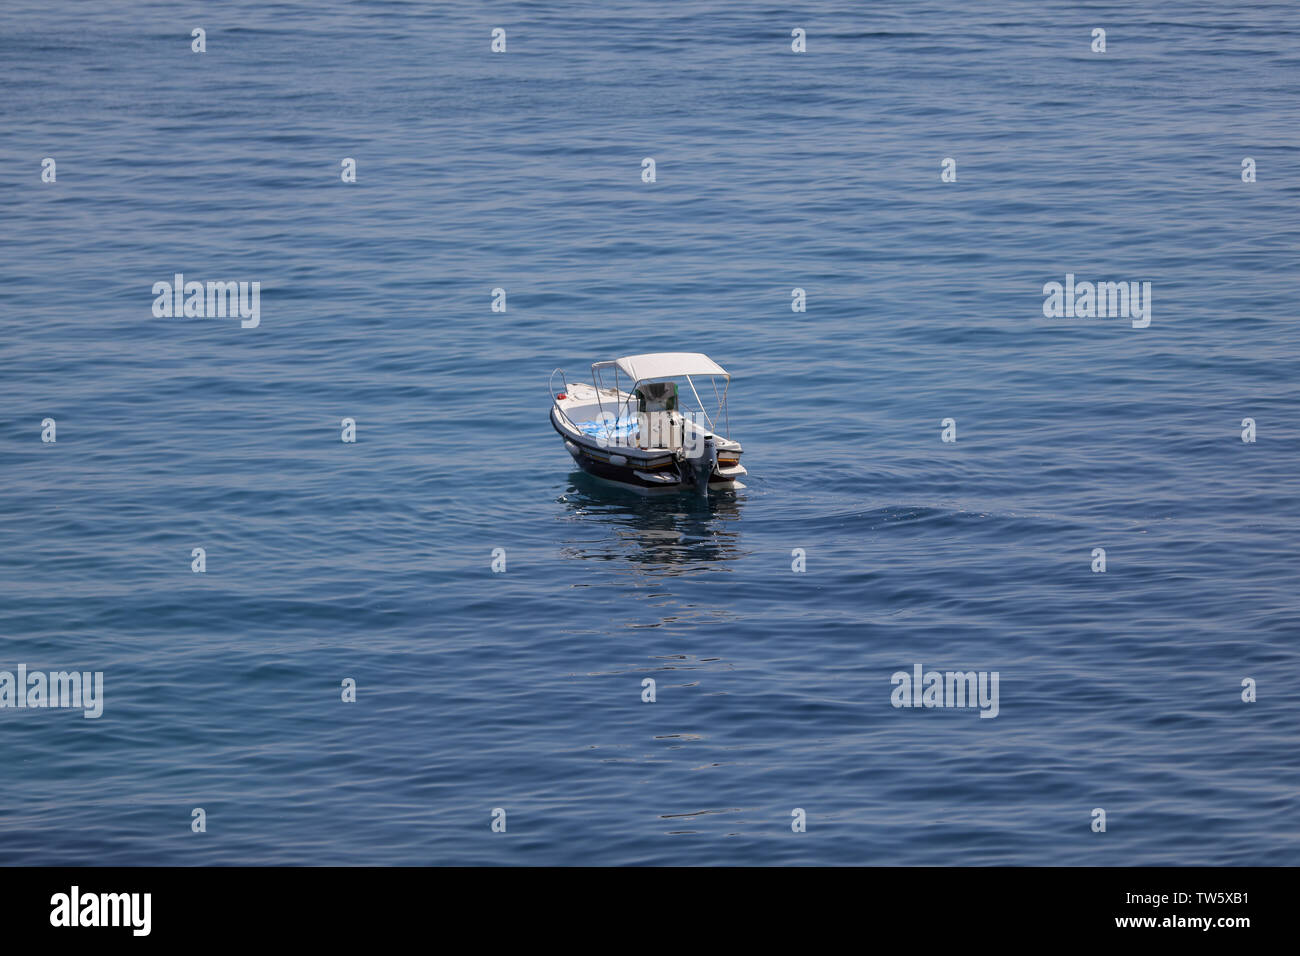 Small launch boat with people, blue sea and sky - Stock Image